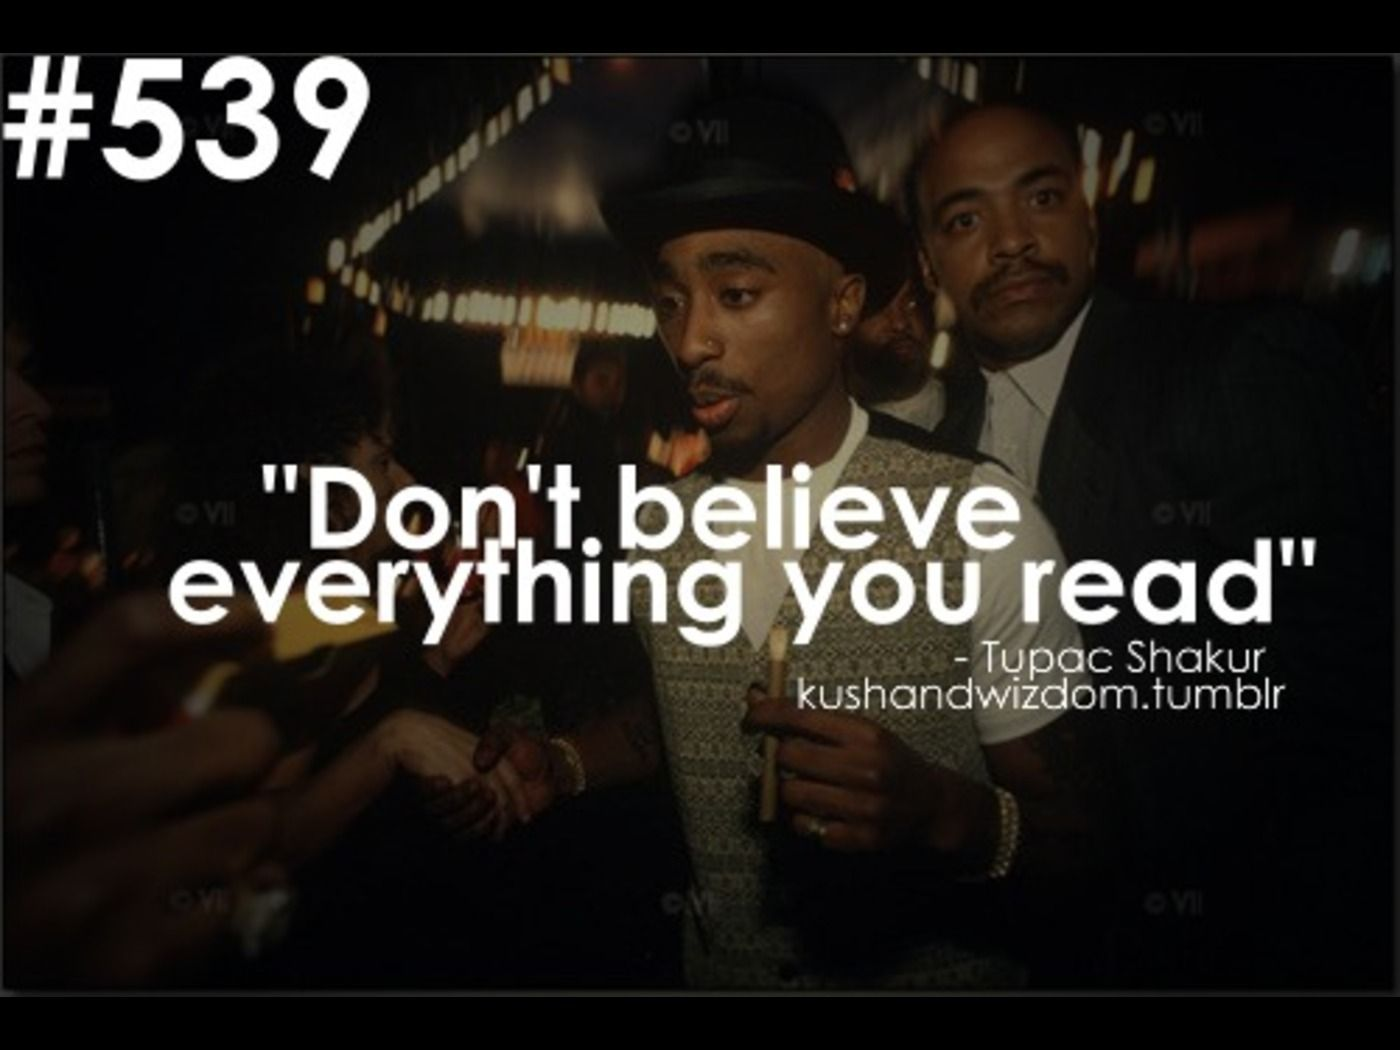 Tupac God Quotes Tumblr Cars 2 Dvd Cover 2011 Shakur About Macaulay Picture